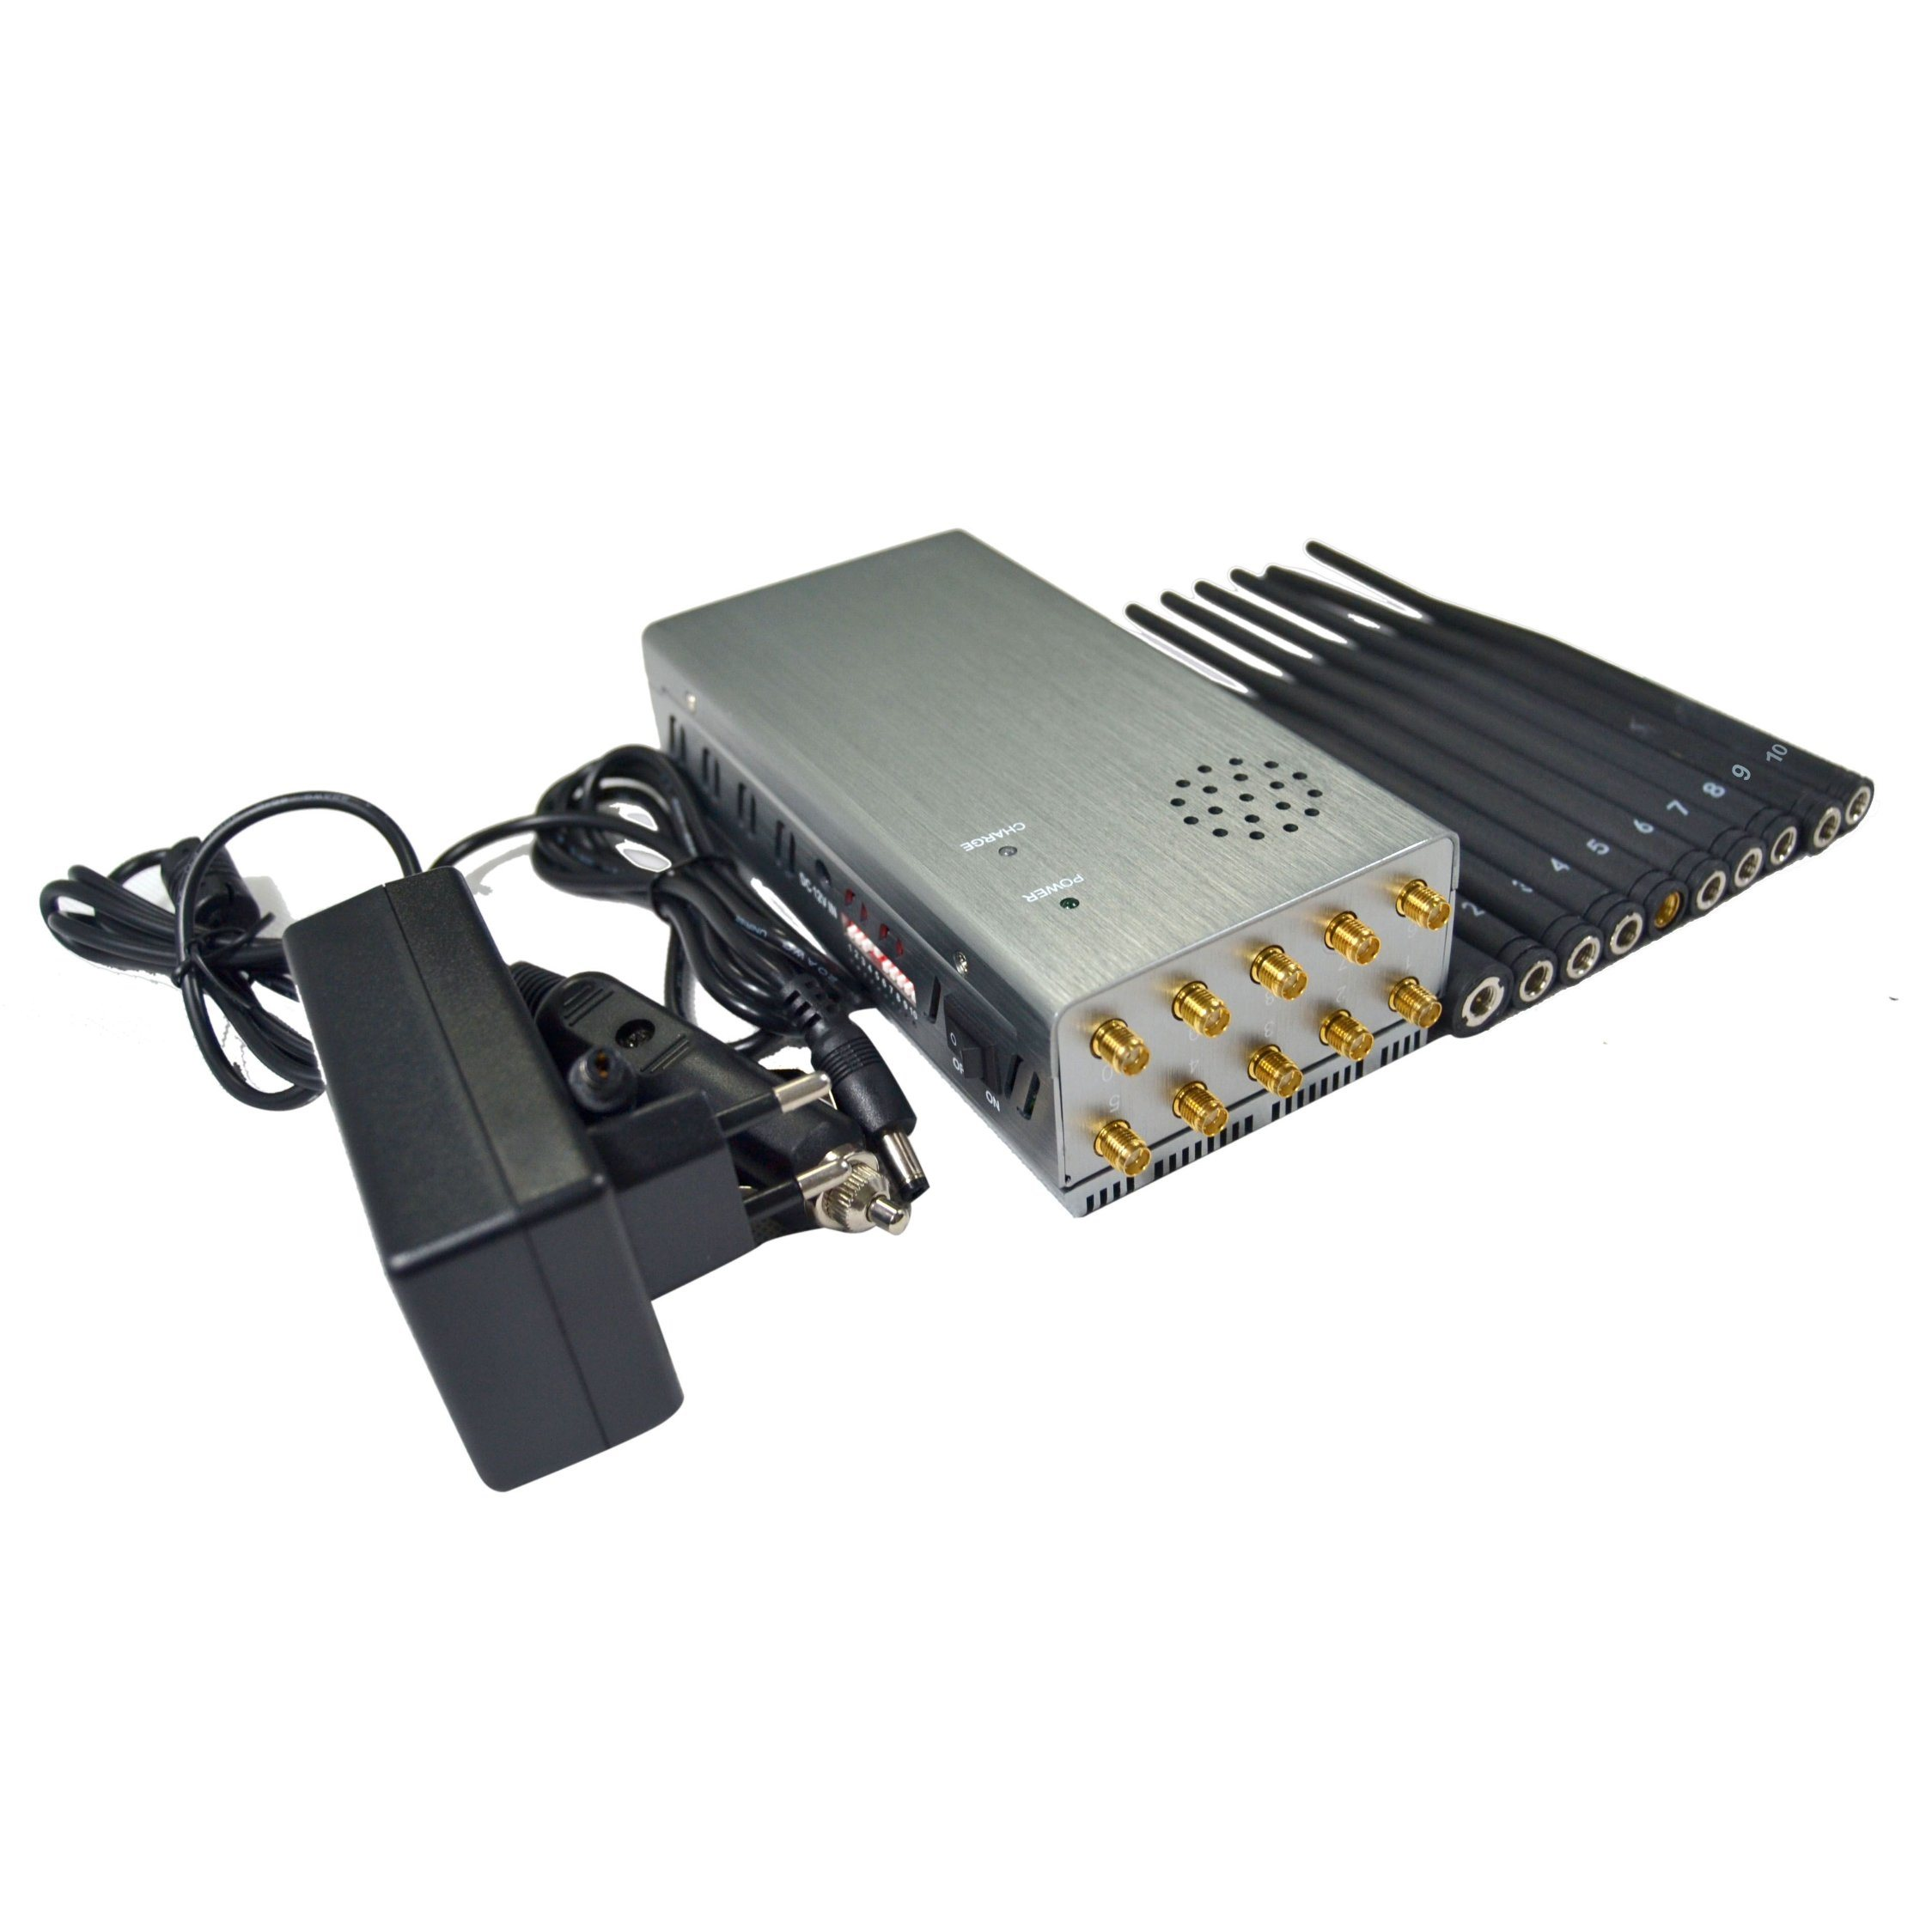 mobile jammer report pdf - China Lojack 2g 3G 4G 5g GPS 433MHz315MHz868MHz Full Band up to 10 Antennas Signal Blocker - China 8000mA Battery Jammer, Large Volume Power Signal Blocker